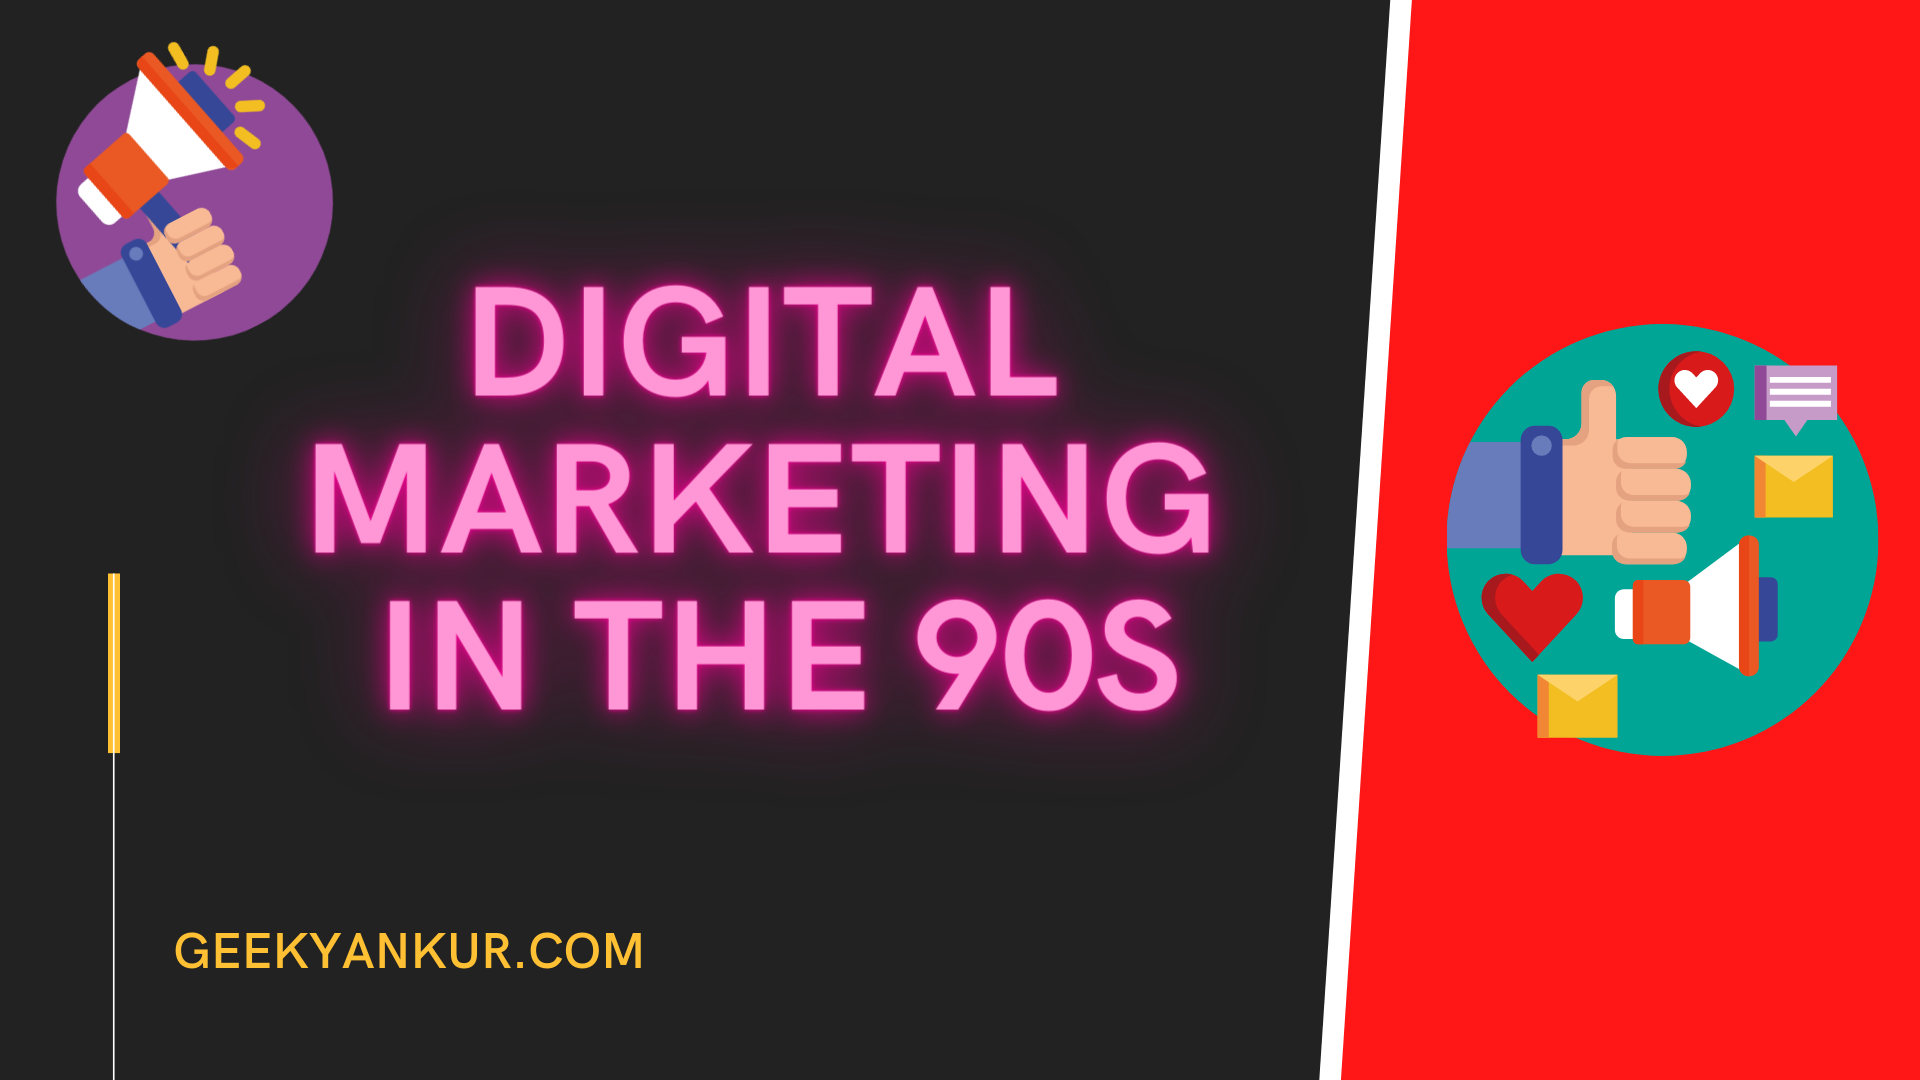 Digital Marketing in The 90s